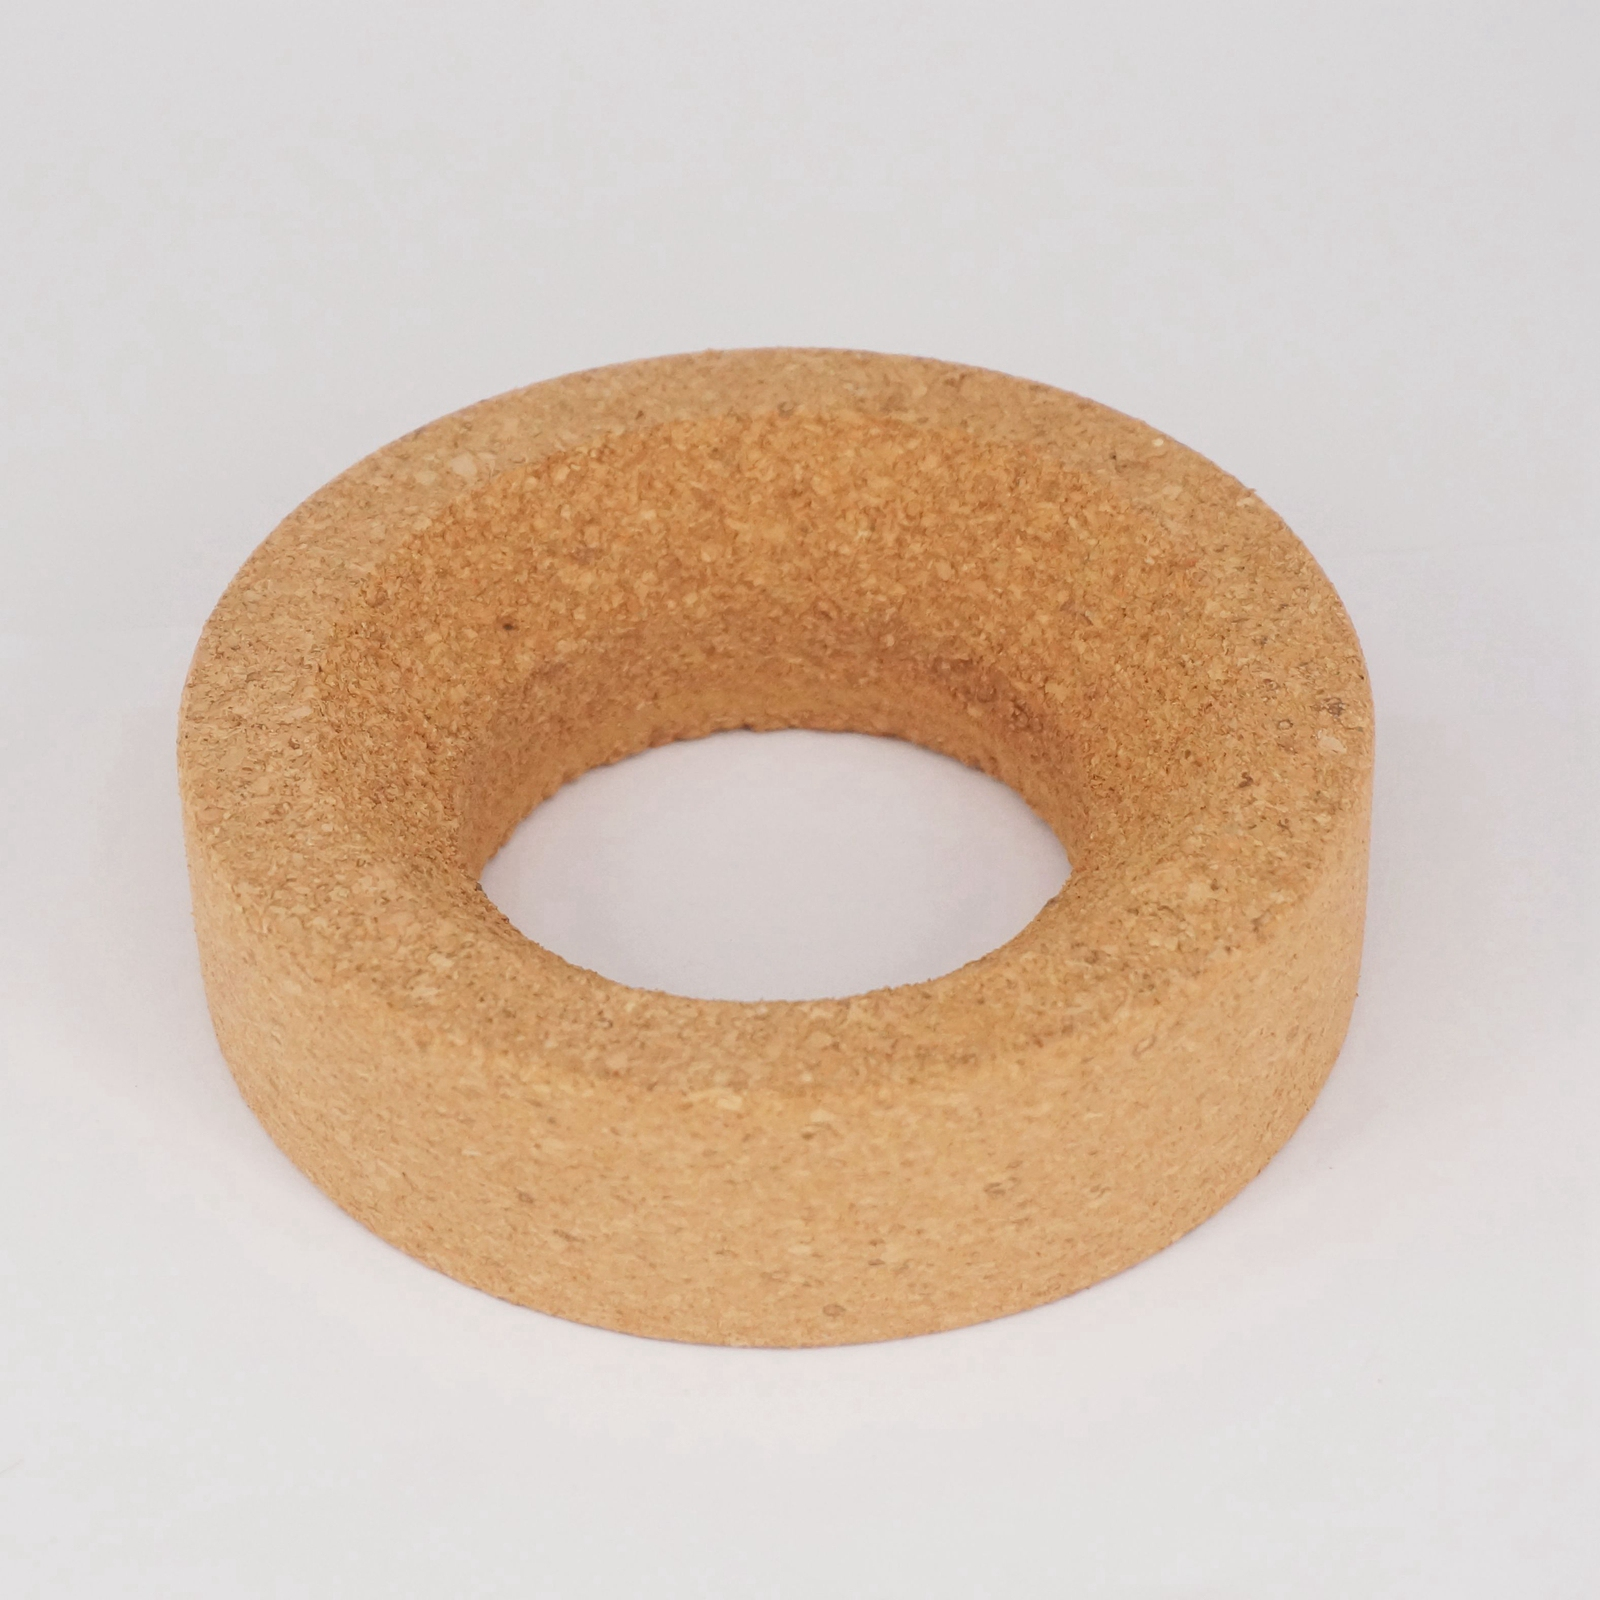 110mm Diameter Laboratory Synthetic Cork Ring Holder For Round Bottom Flask 250ml-2000ml